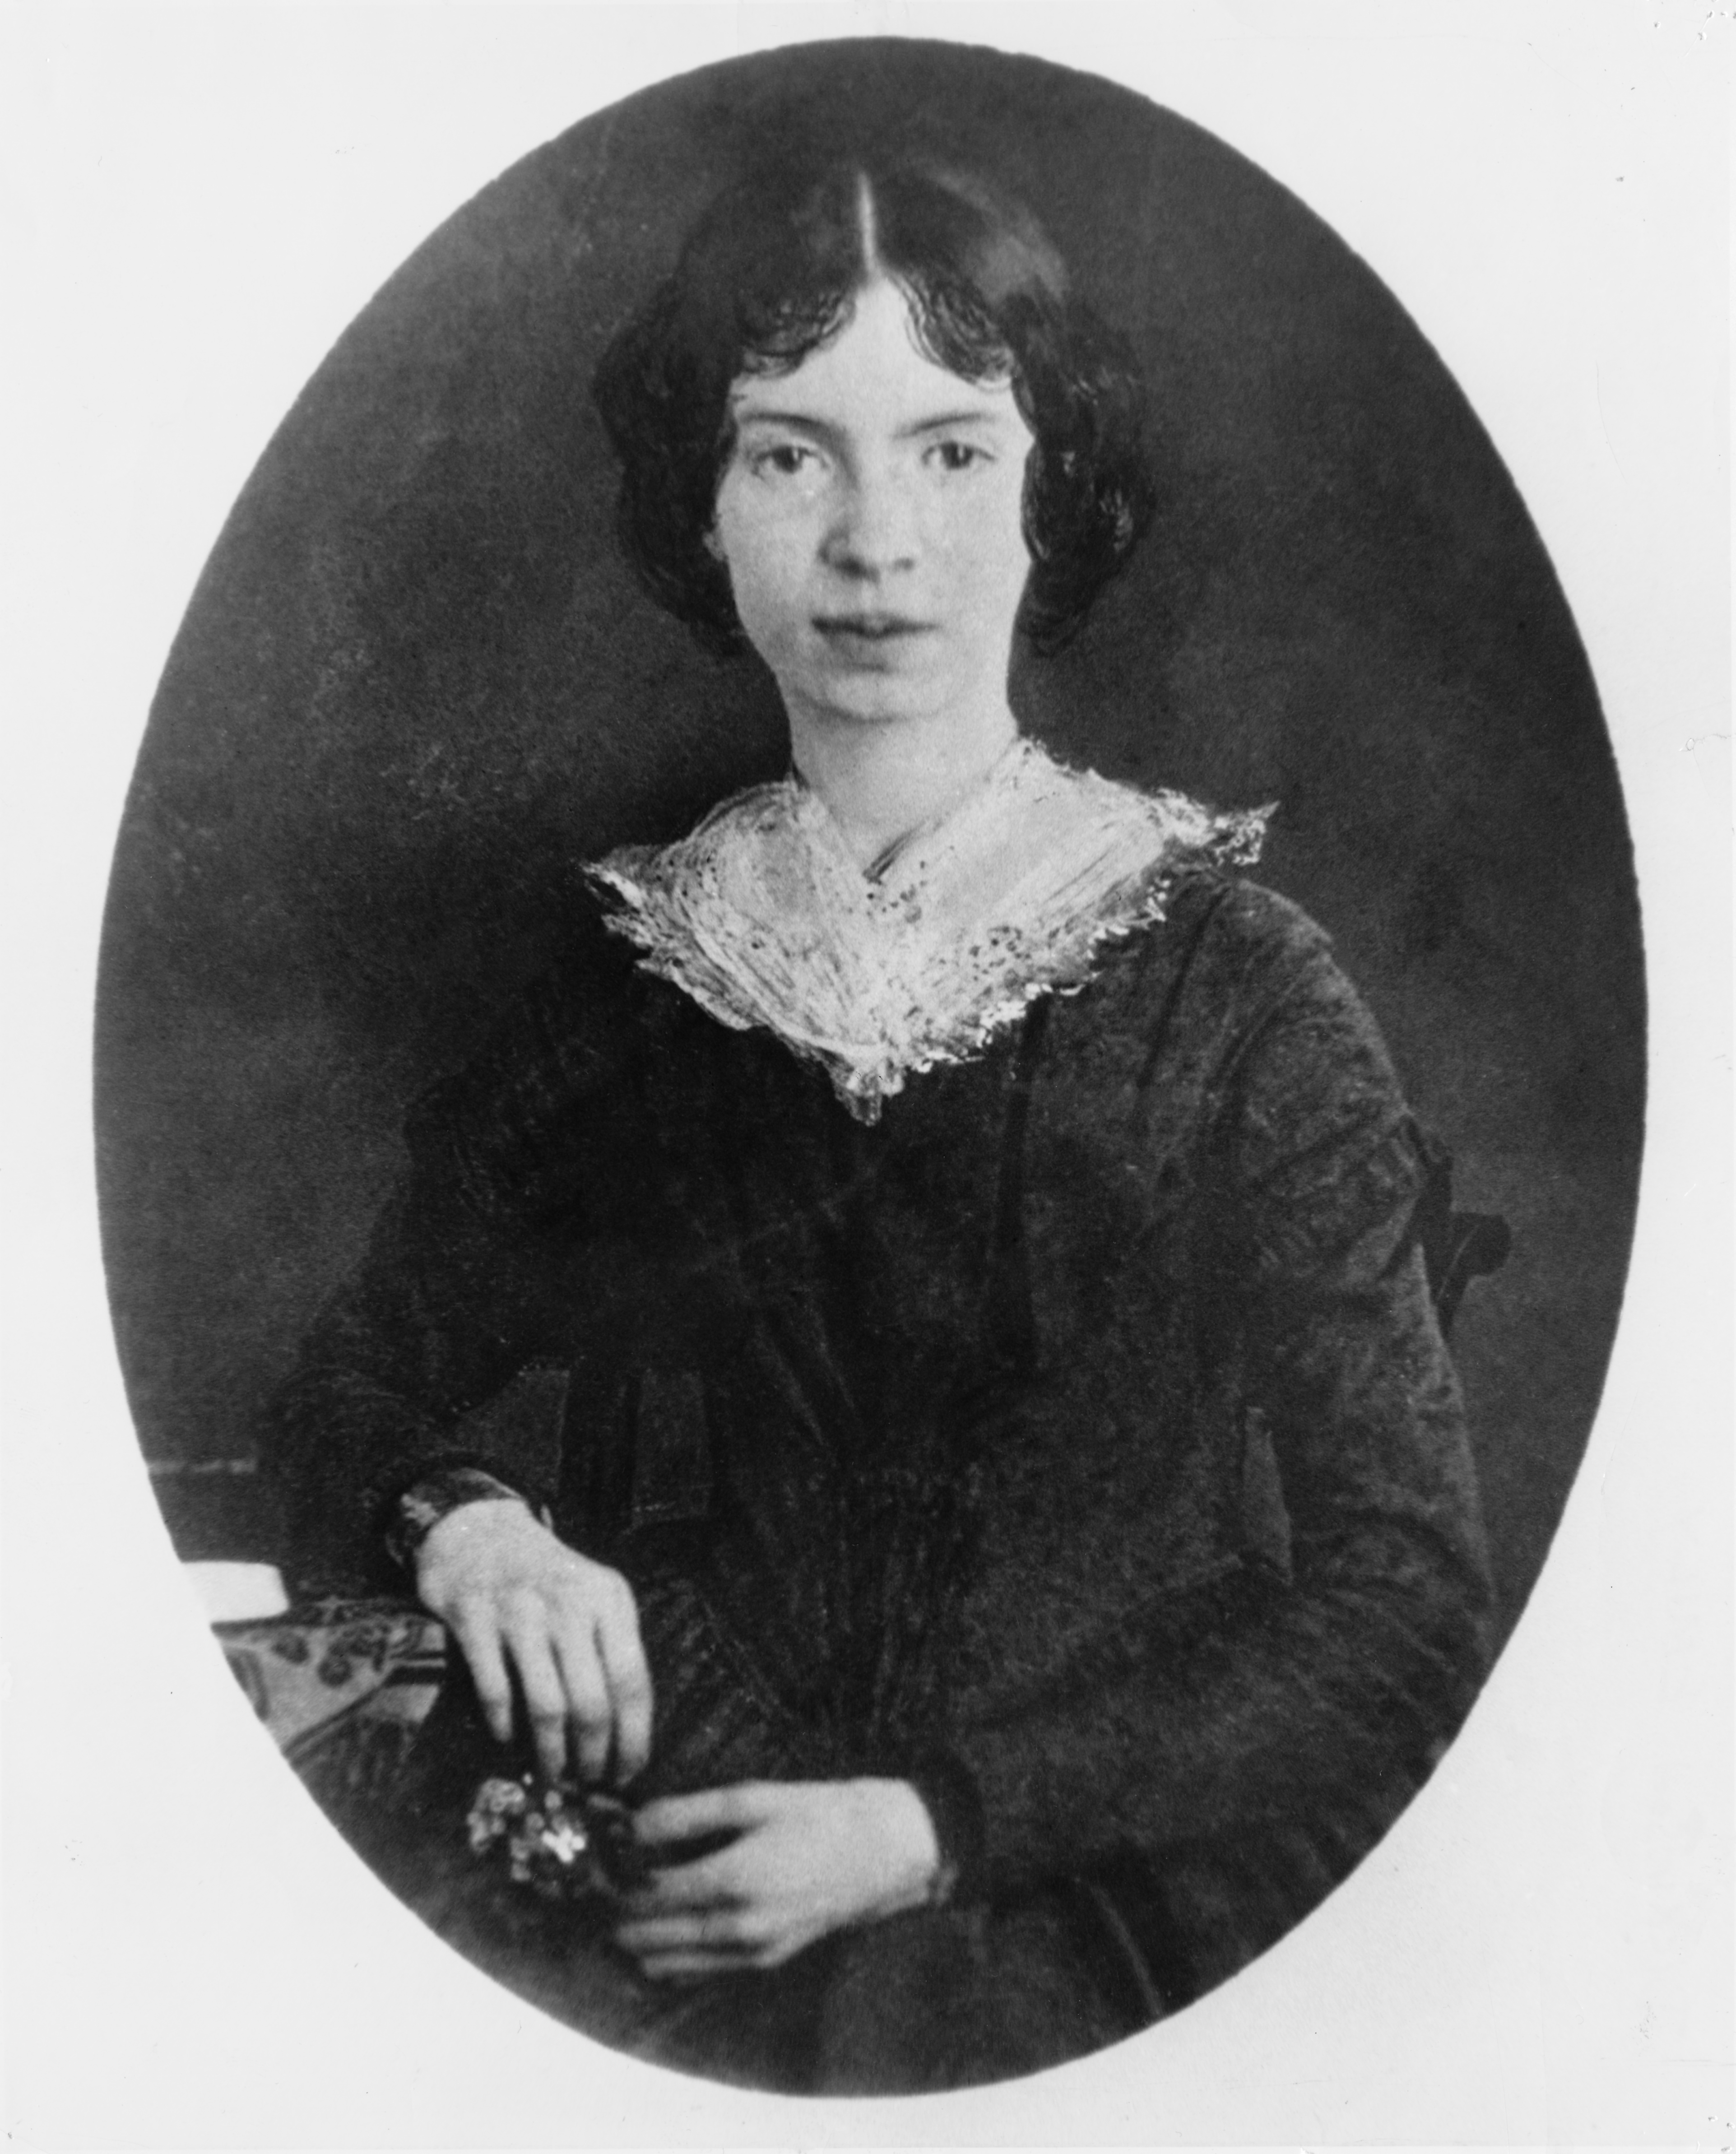 who ended up being emily dickinson